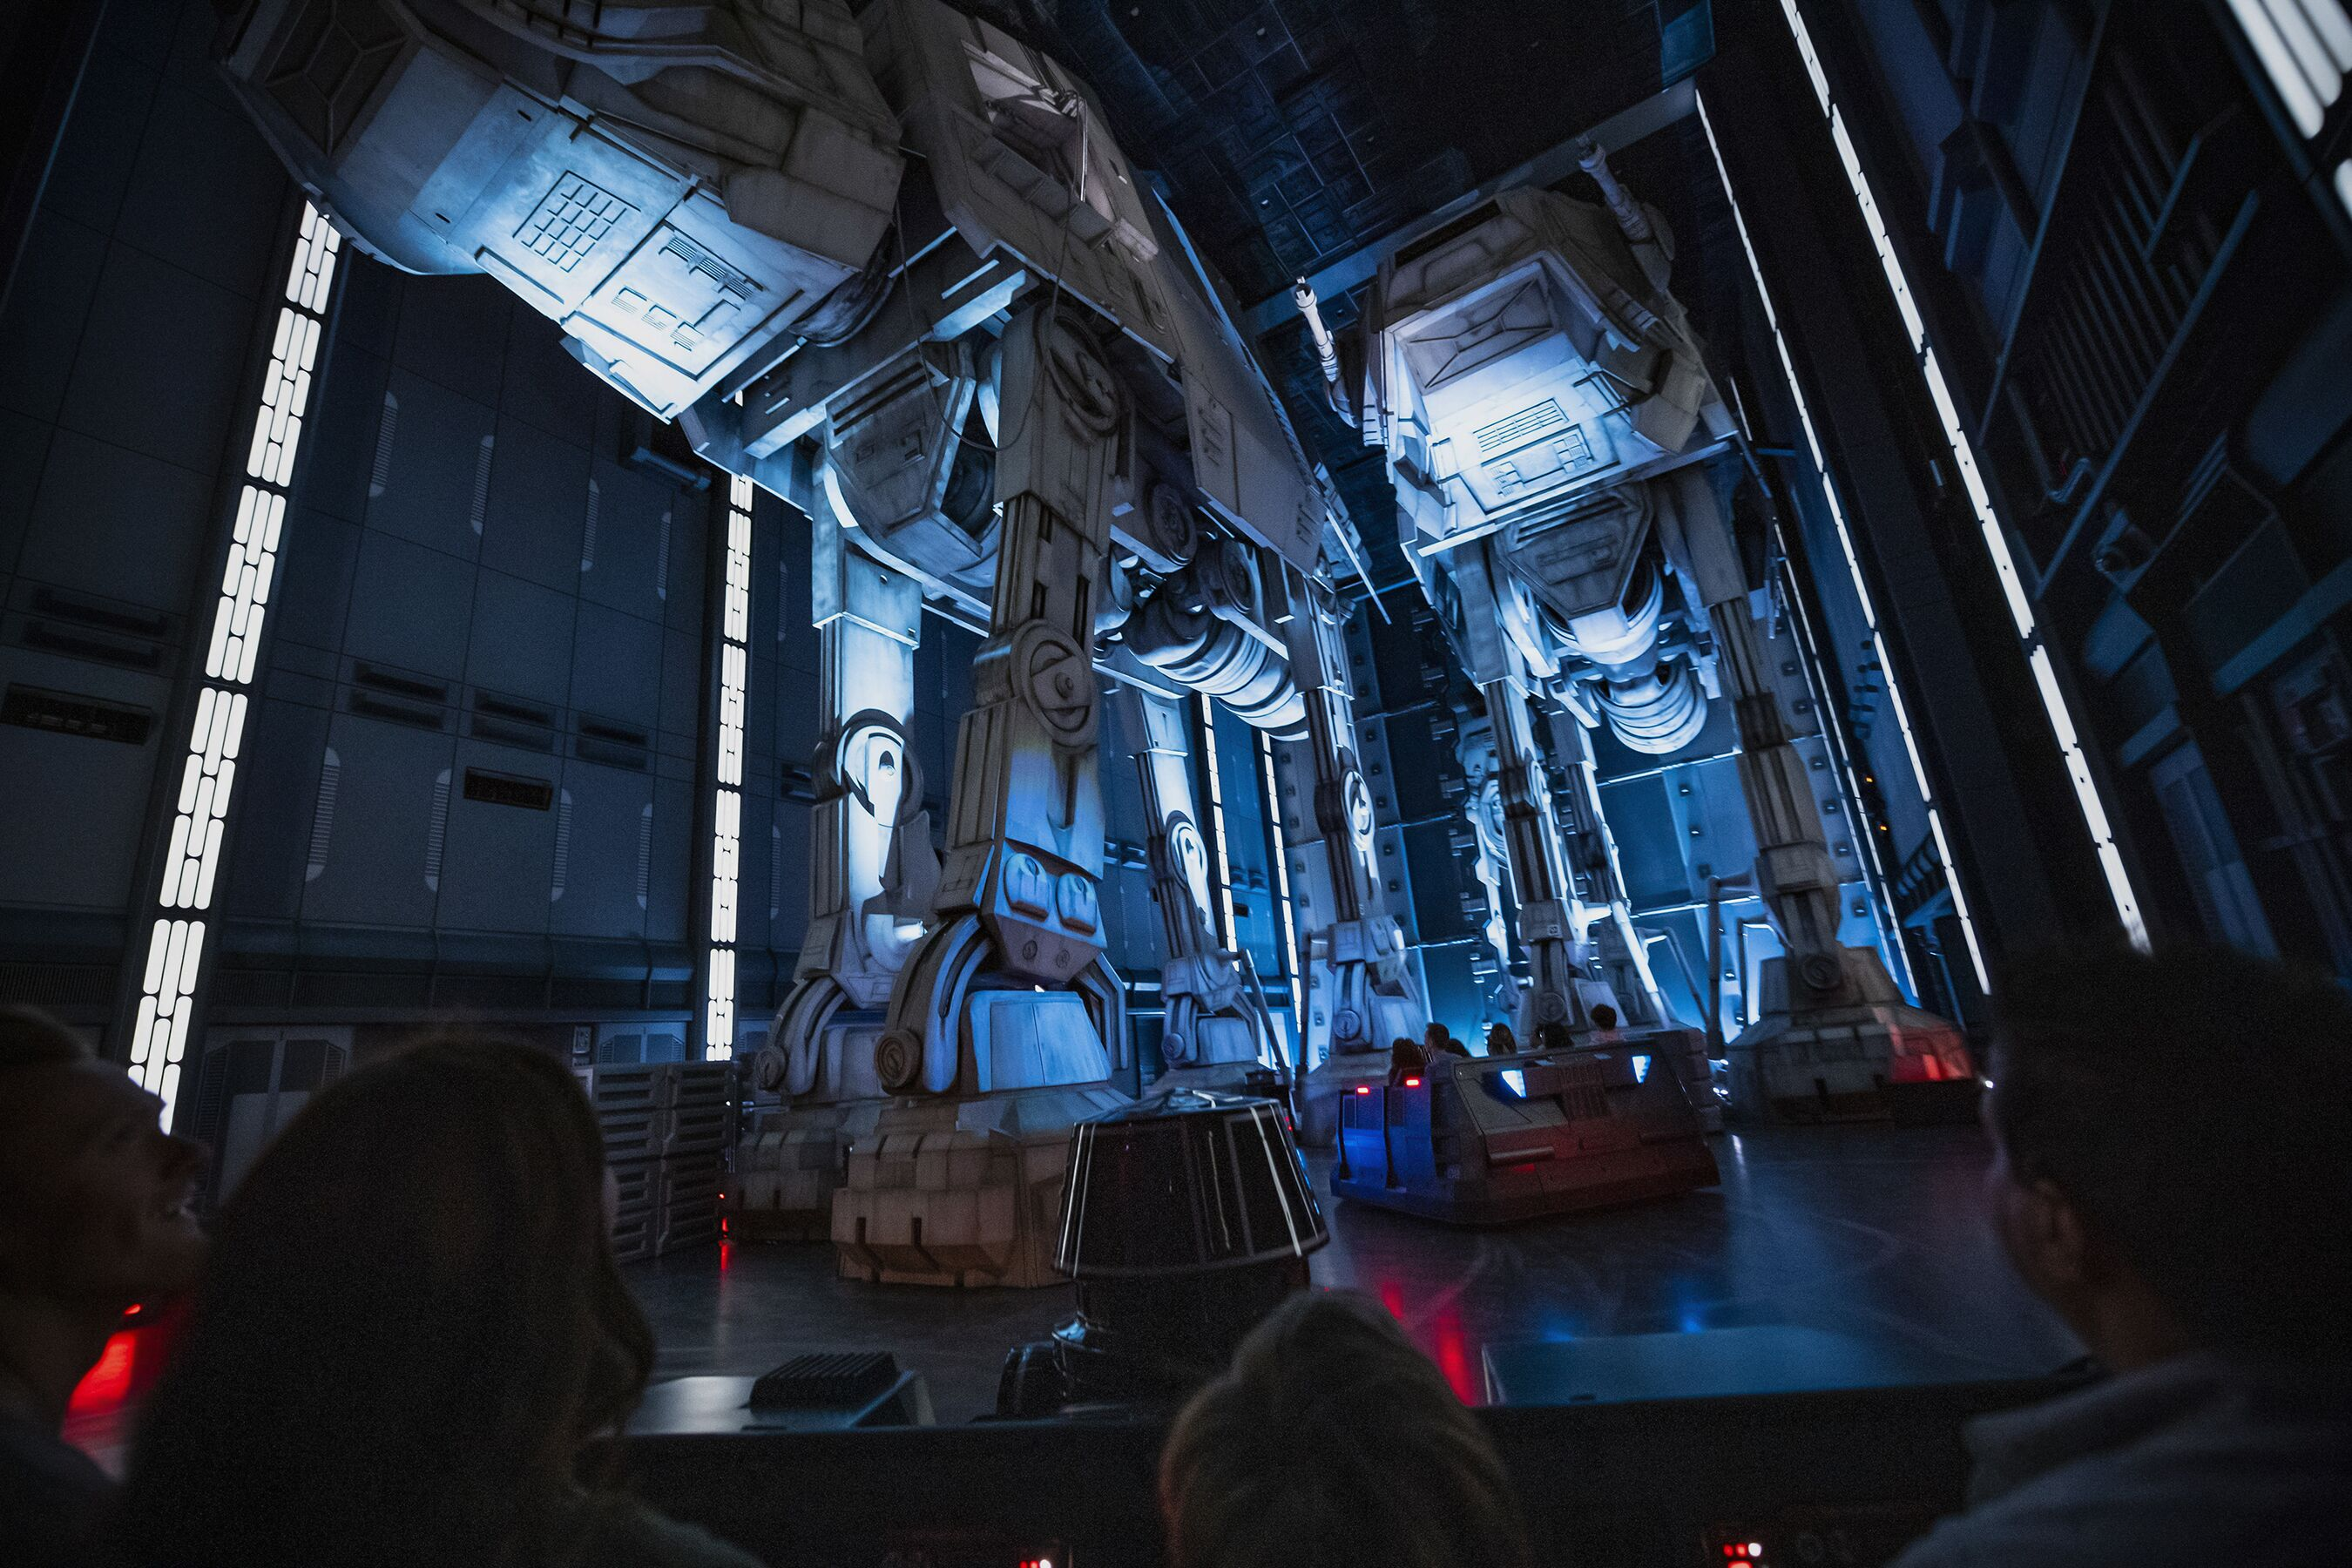 Is Rise of the Resistance at Star Wars: Galaxy's Edge worth the wait?